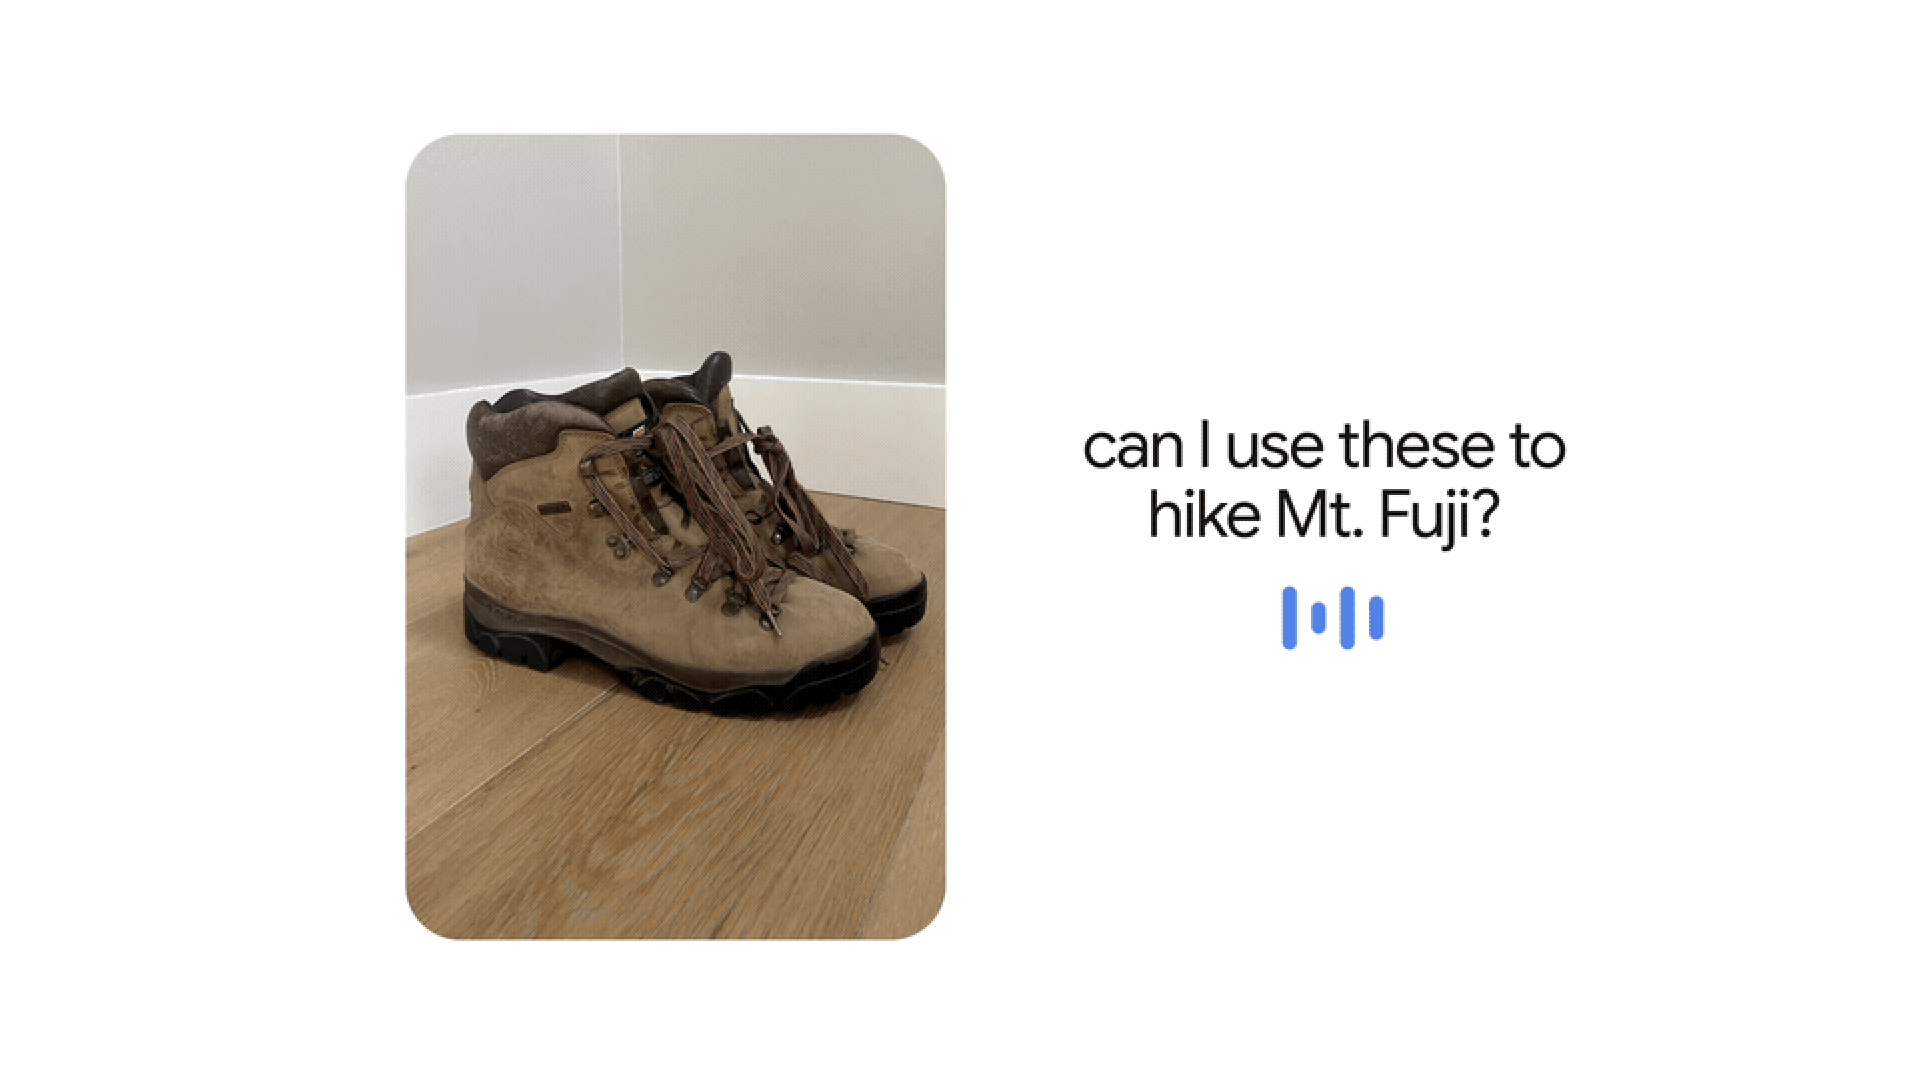 can I use these to hike Mt. Fuji?